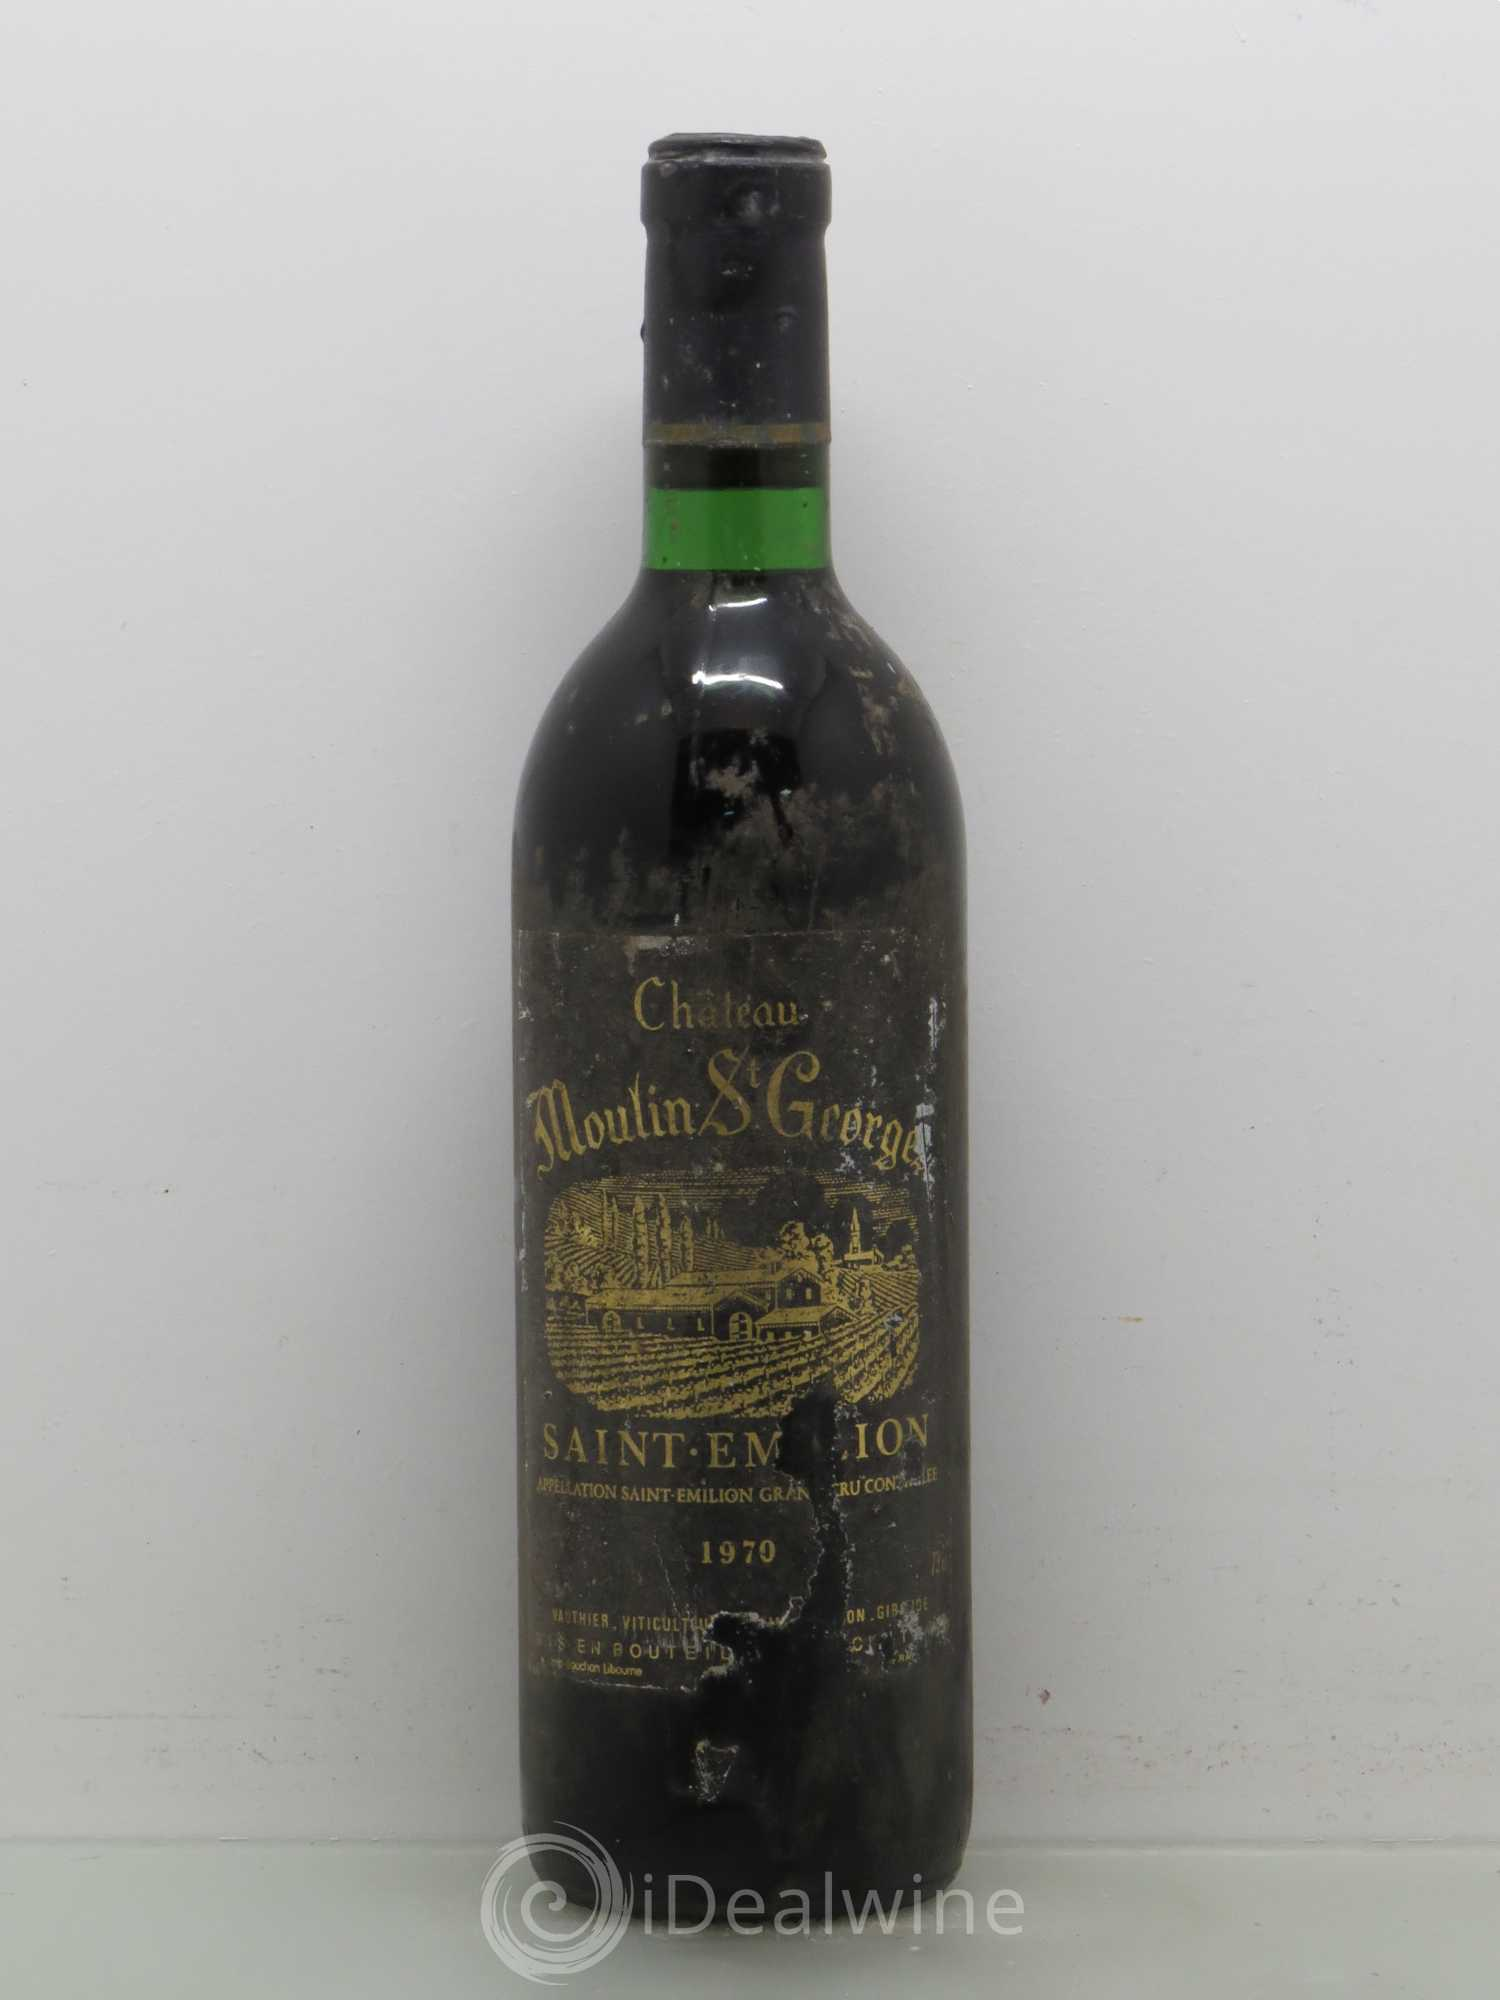 Buy ch teau moulin saint georges grand cru 1970 lot 7729 for Buy chateaubriand